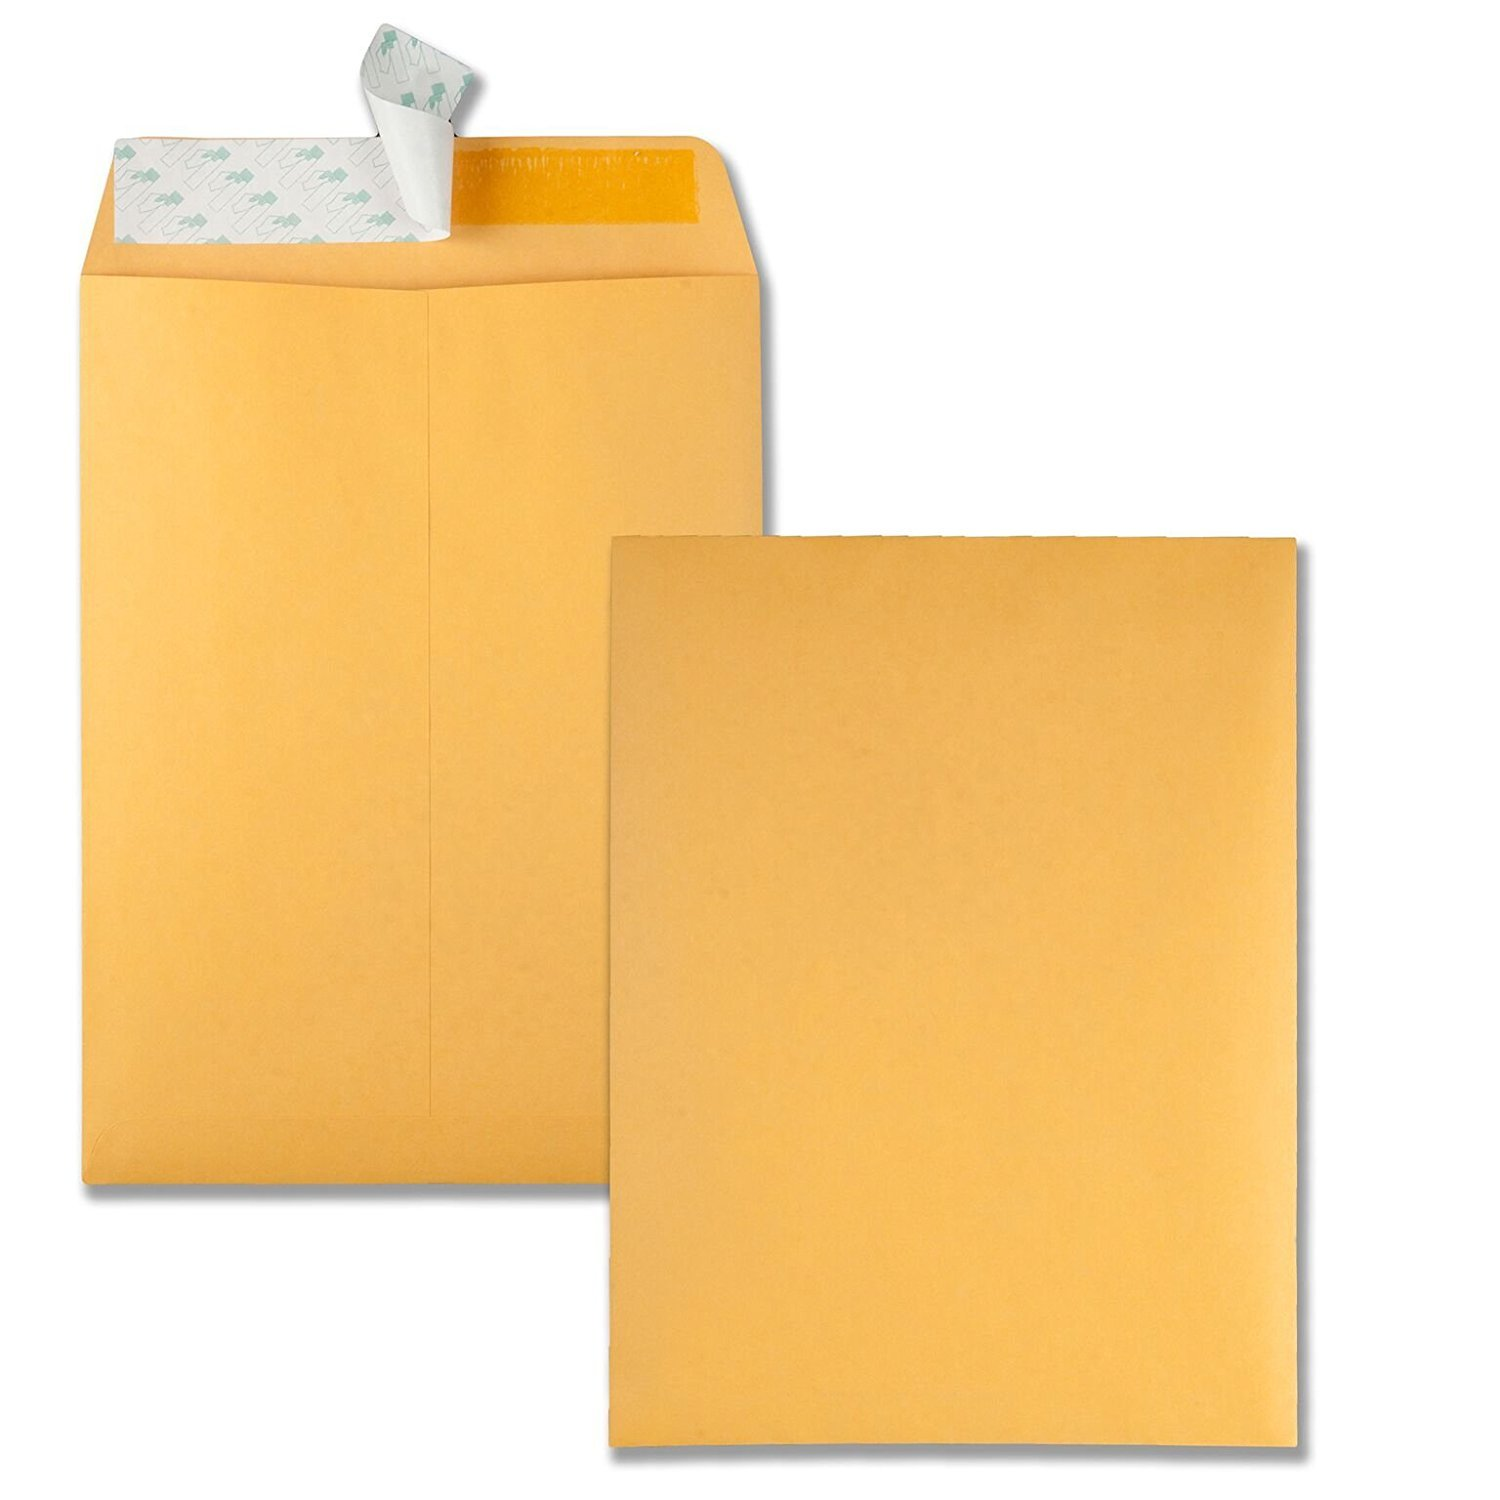 Quality Park 9 x 12 Catalog Envelopes with Self Seal Closure, 28 lb Brown Kraft, Great Option for Mailing, Storage and Organizing, (44562) (4 X Pack of 100)